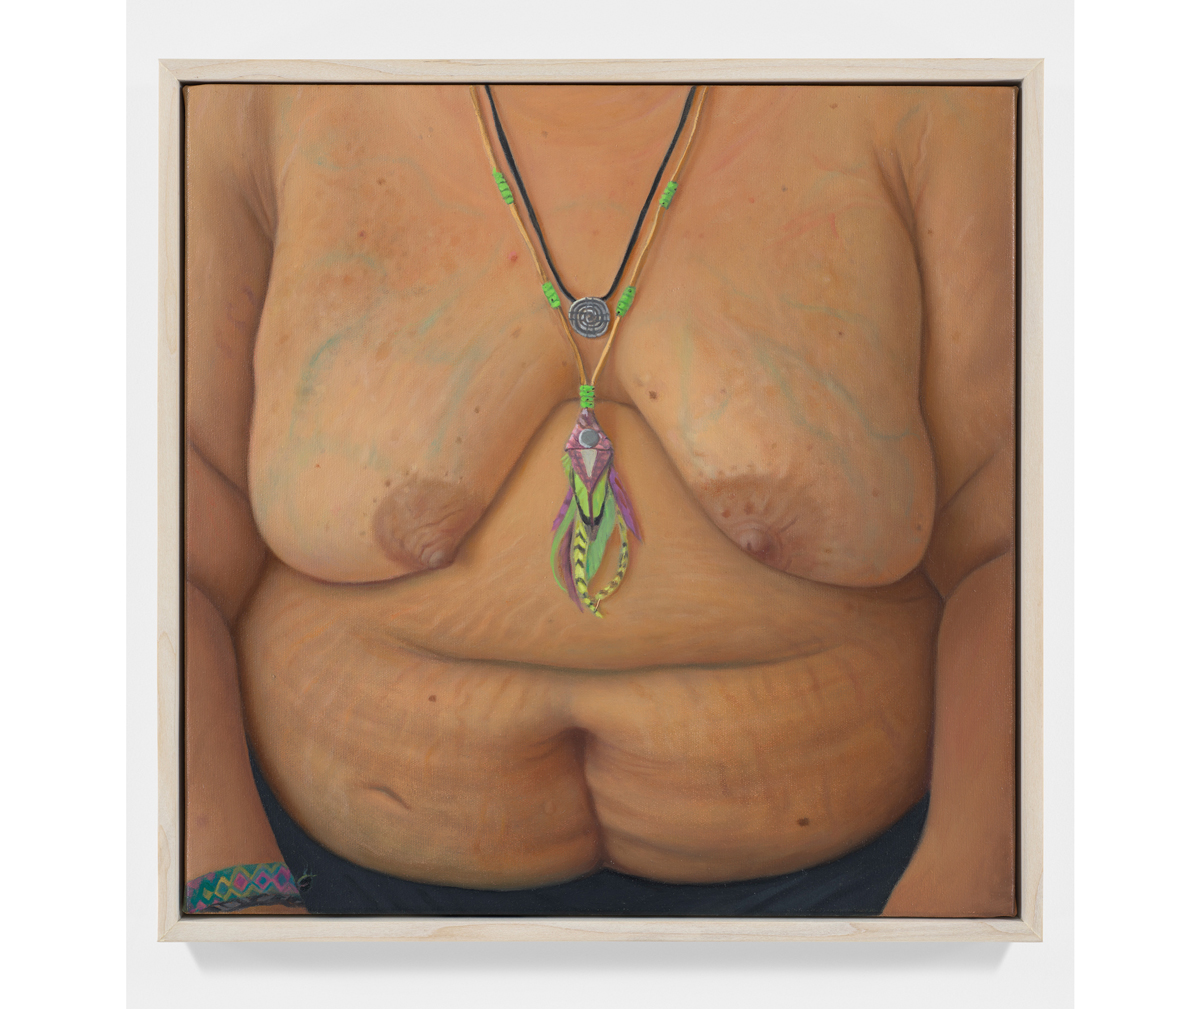 A painting of a women's nude torso. A necklace hangs between her breasts.